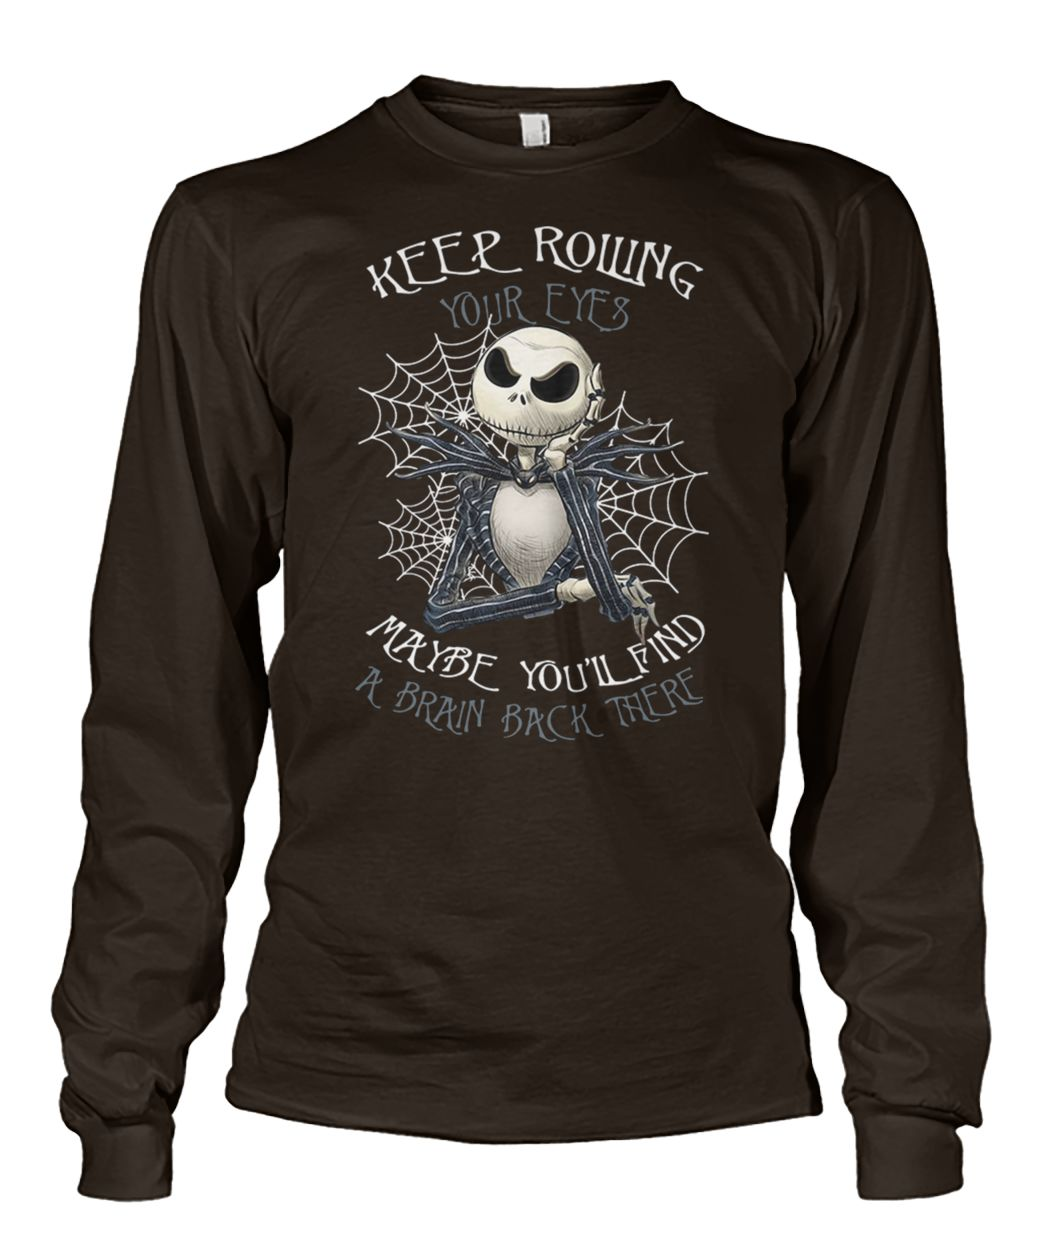 Jack skellington keep rolling maybe you'll find a brain back there unisex long sleeve